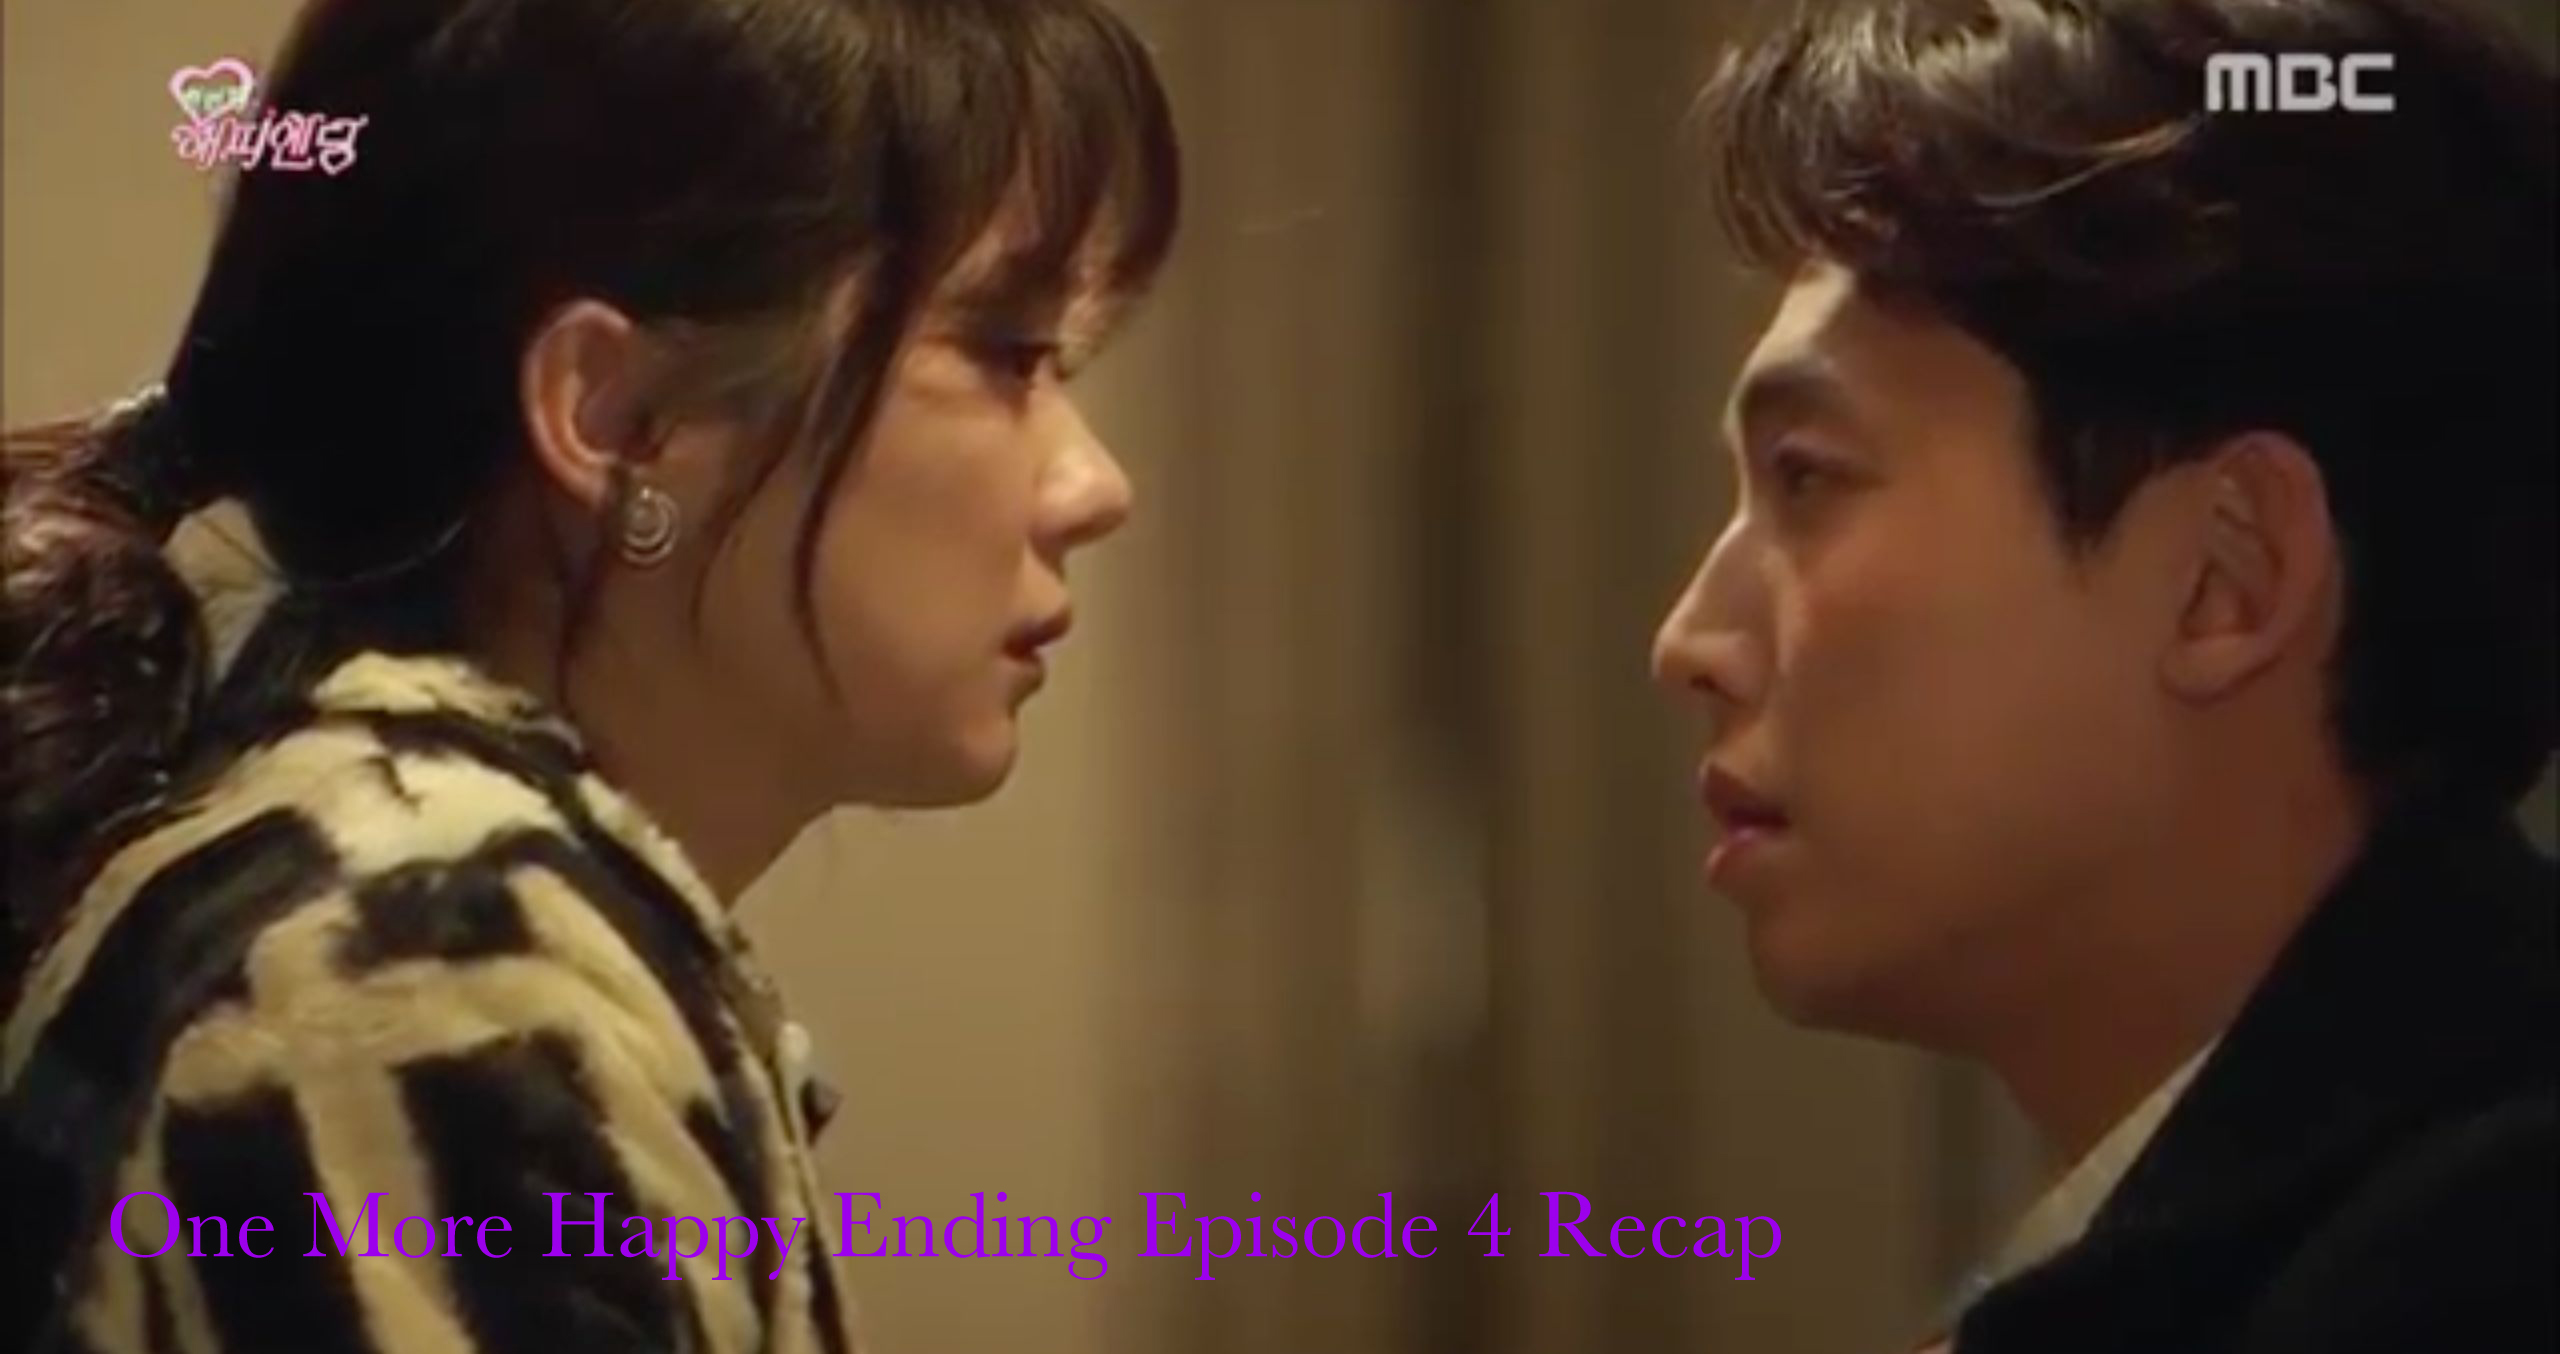 Drama Recap One More Happy Ending Ep 4